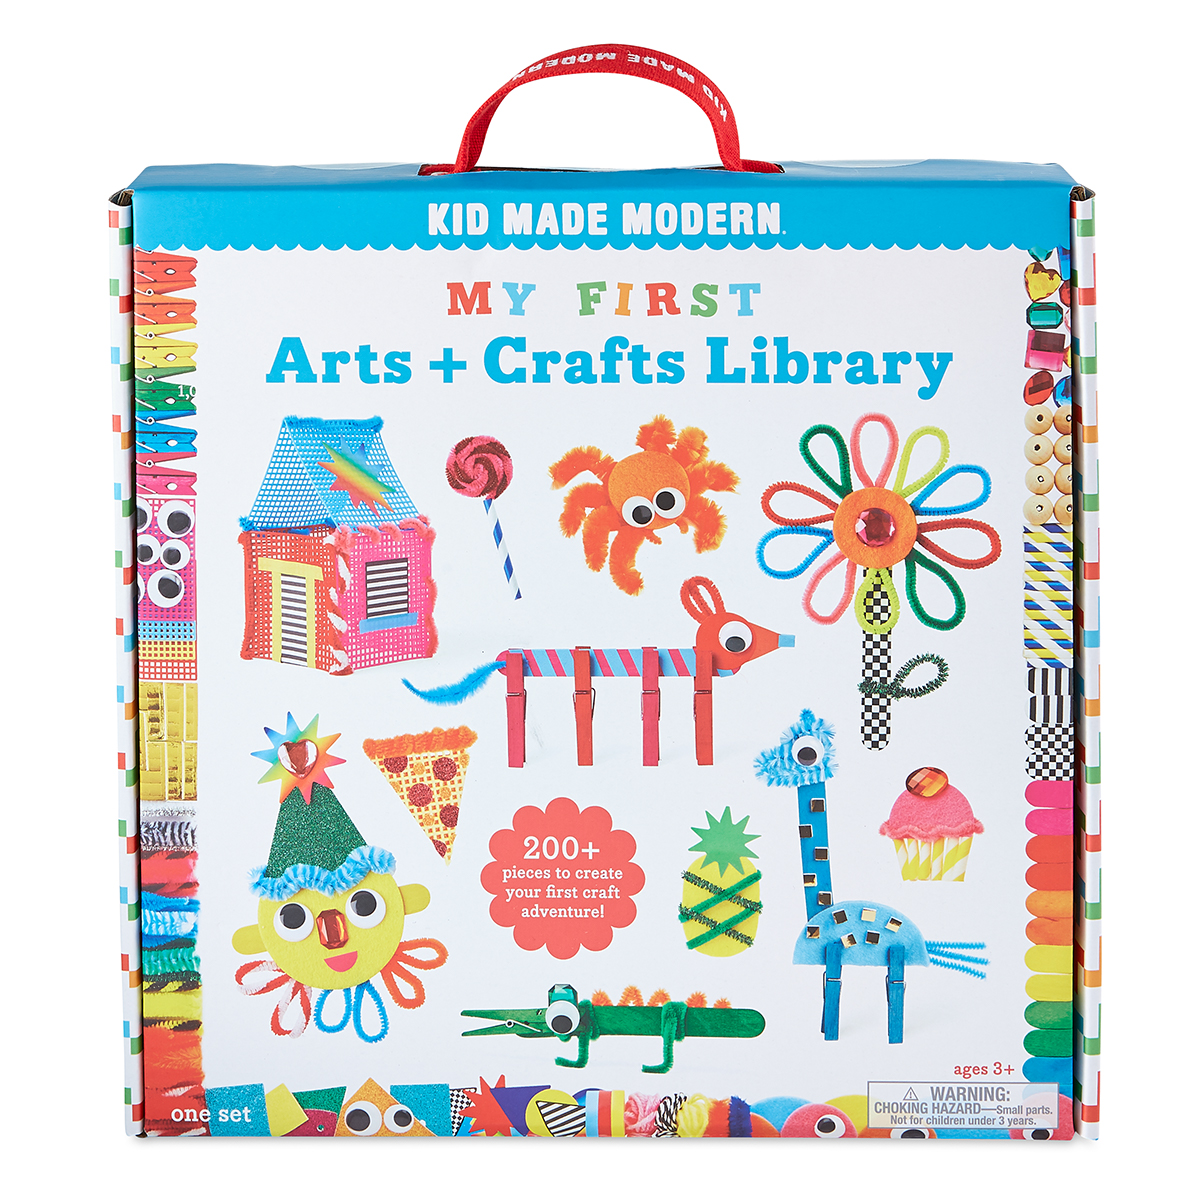 Kid Made Modern My First Arts + Crafts Library